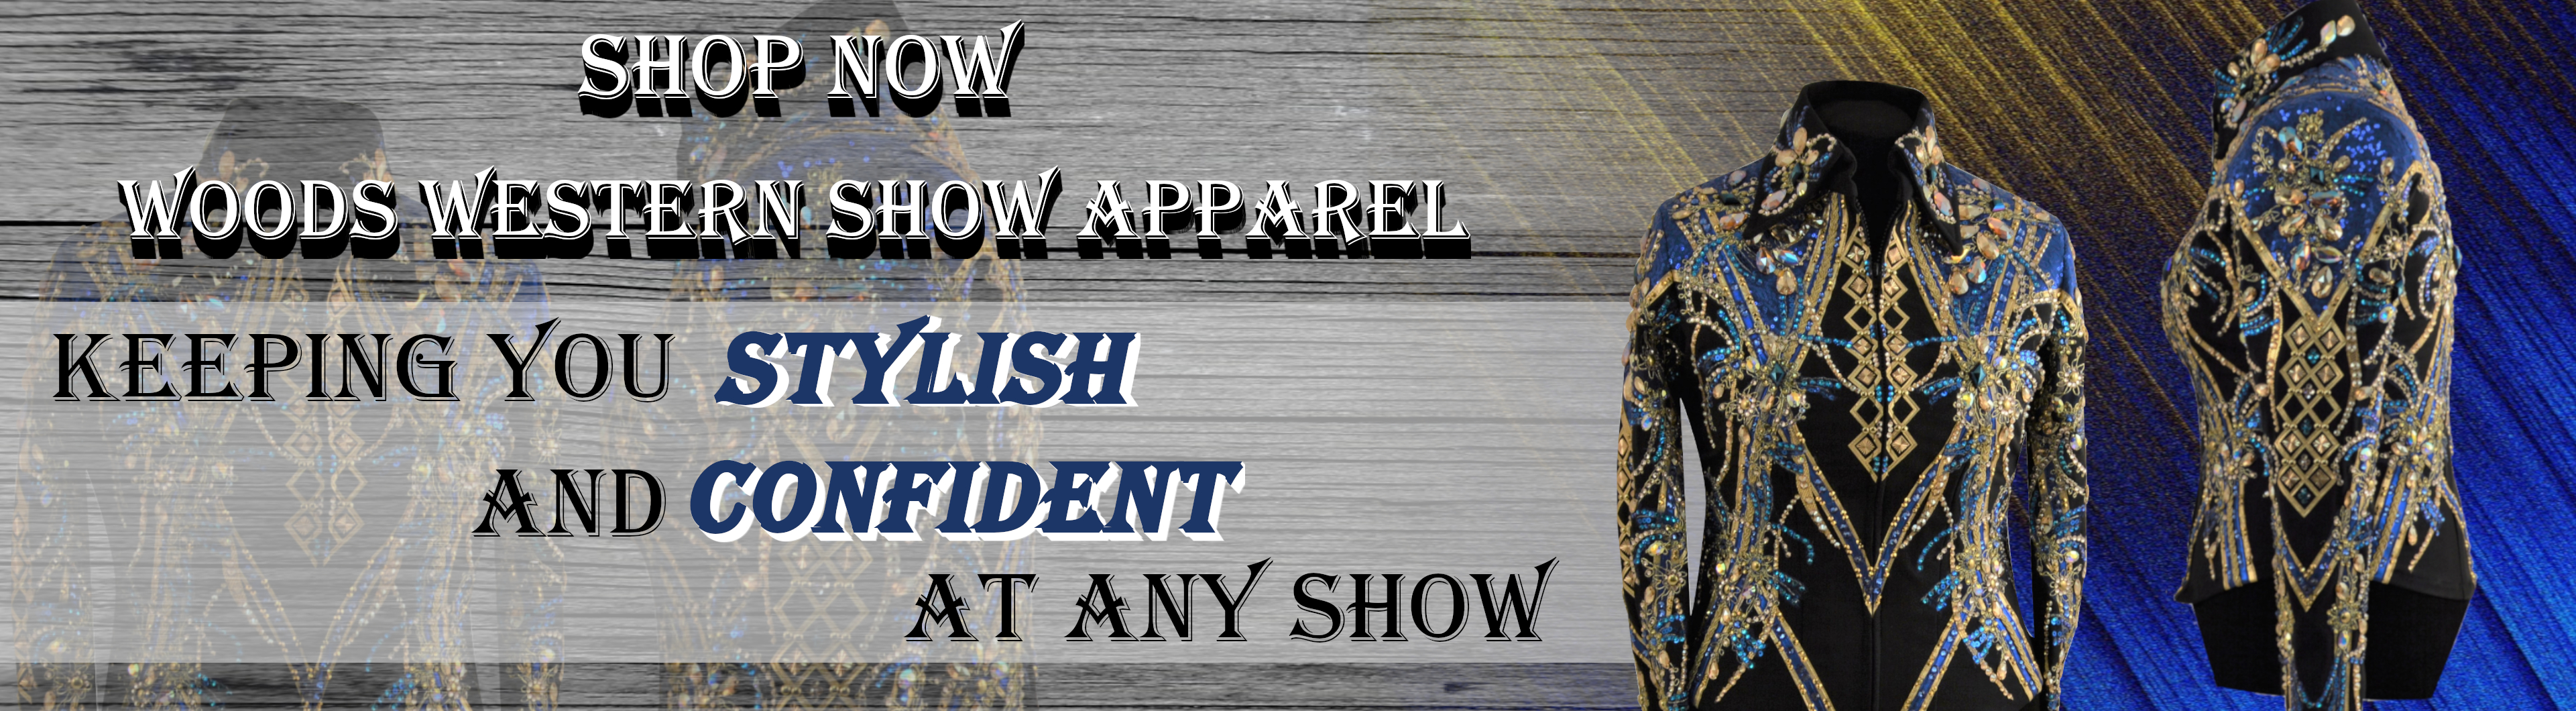 Woods Western Show Apparel